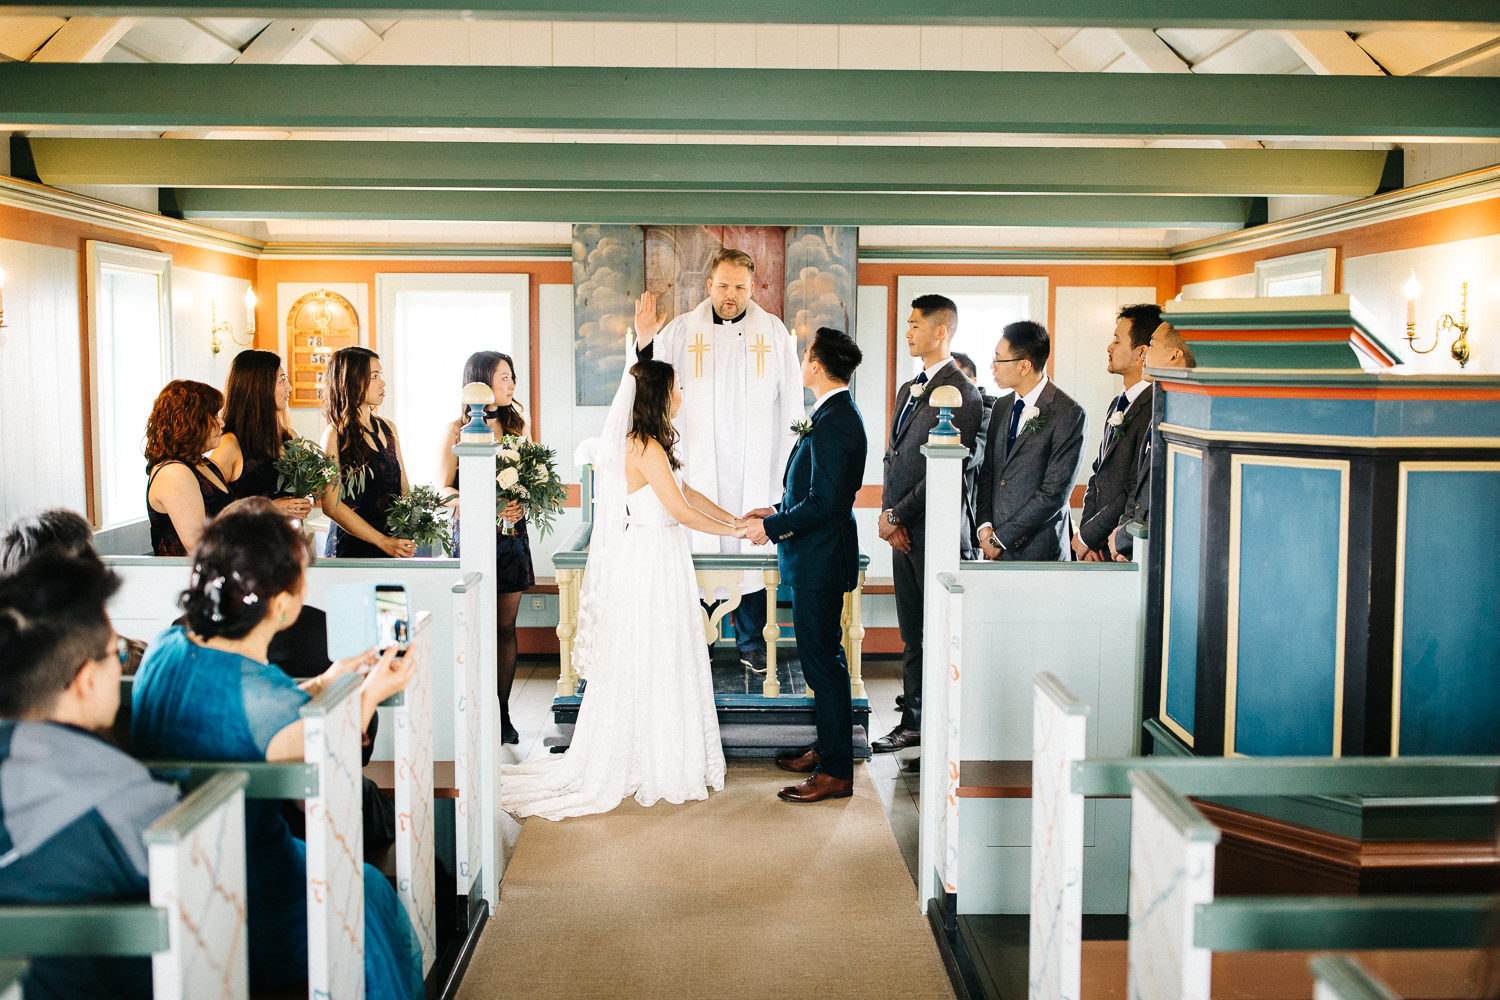 Wedding Buoakirkja Black Church Inside